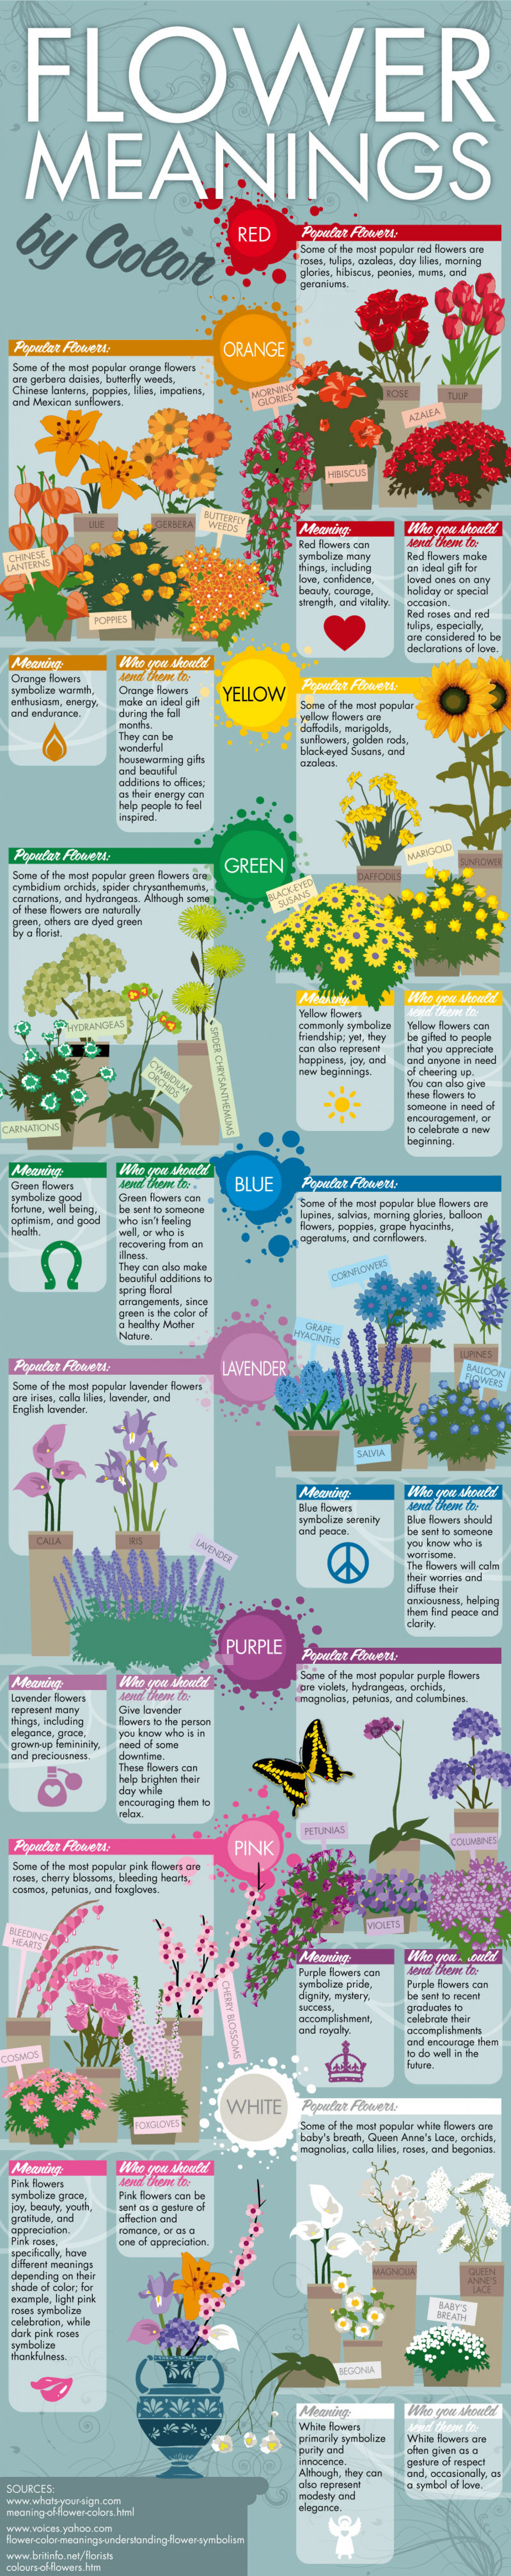 Flower Meanings By Color Infographic